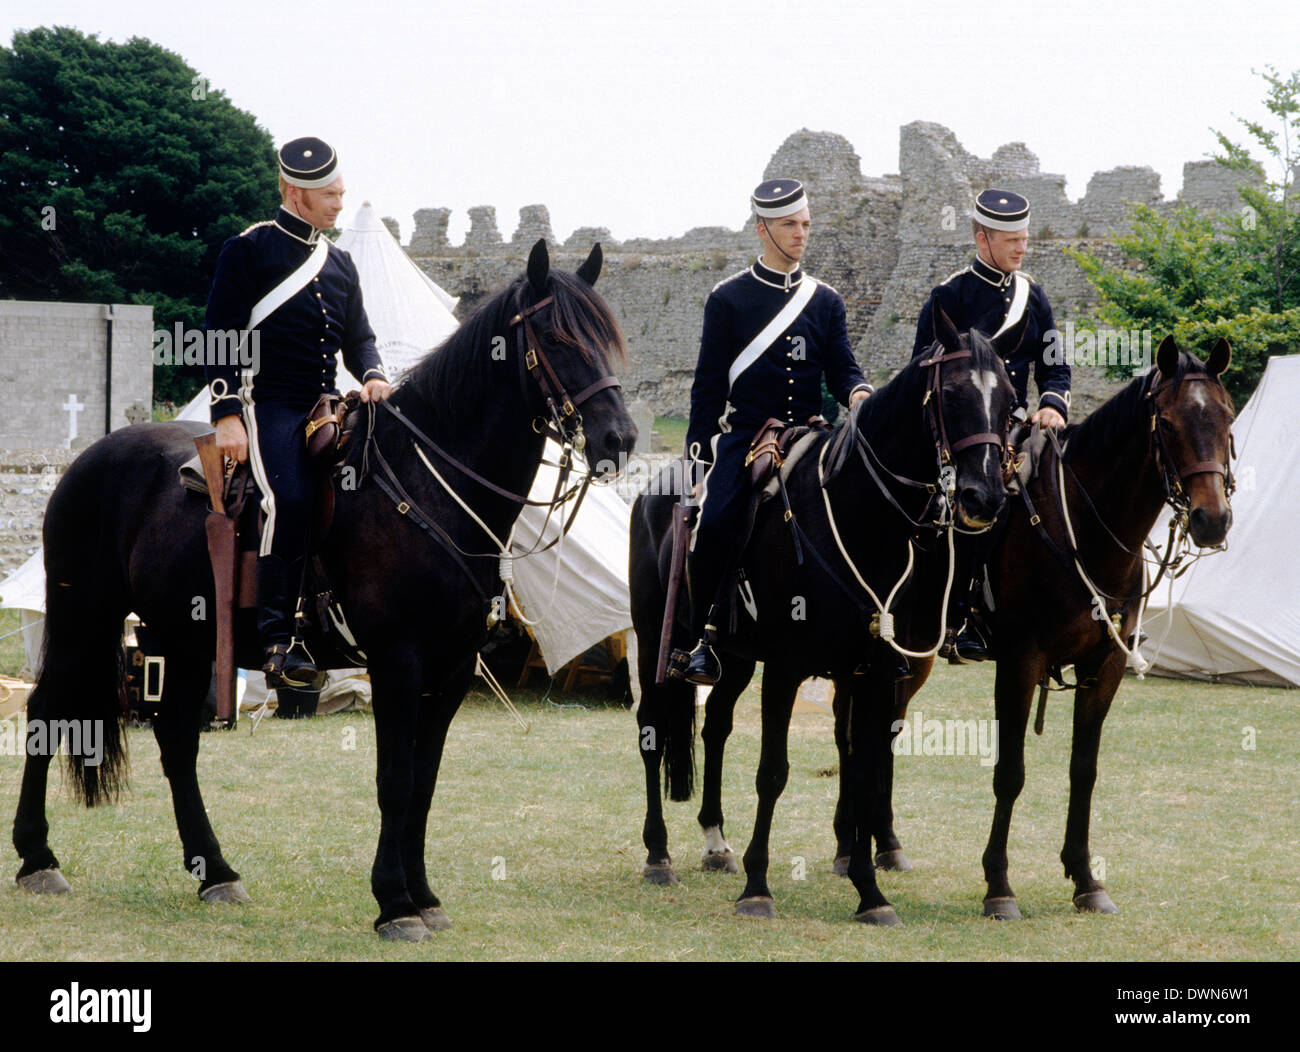 Warwickshire Yeomanry, yeoman cavalry, 1890, historical re-enactment British county soldier soldiers horses yeomen England UK military army uniform uniforms - Stock Image